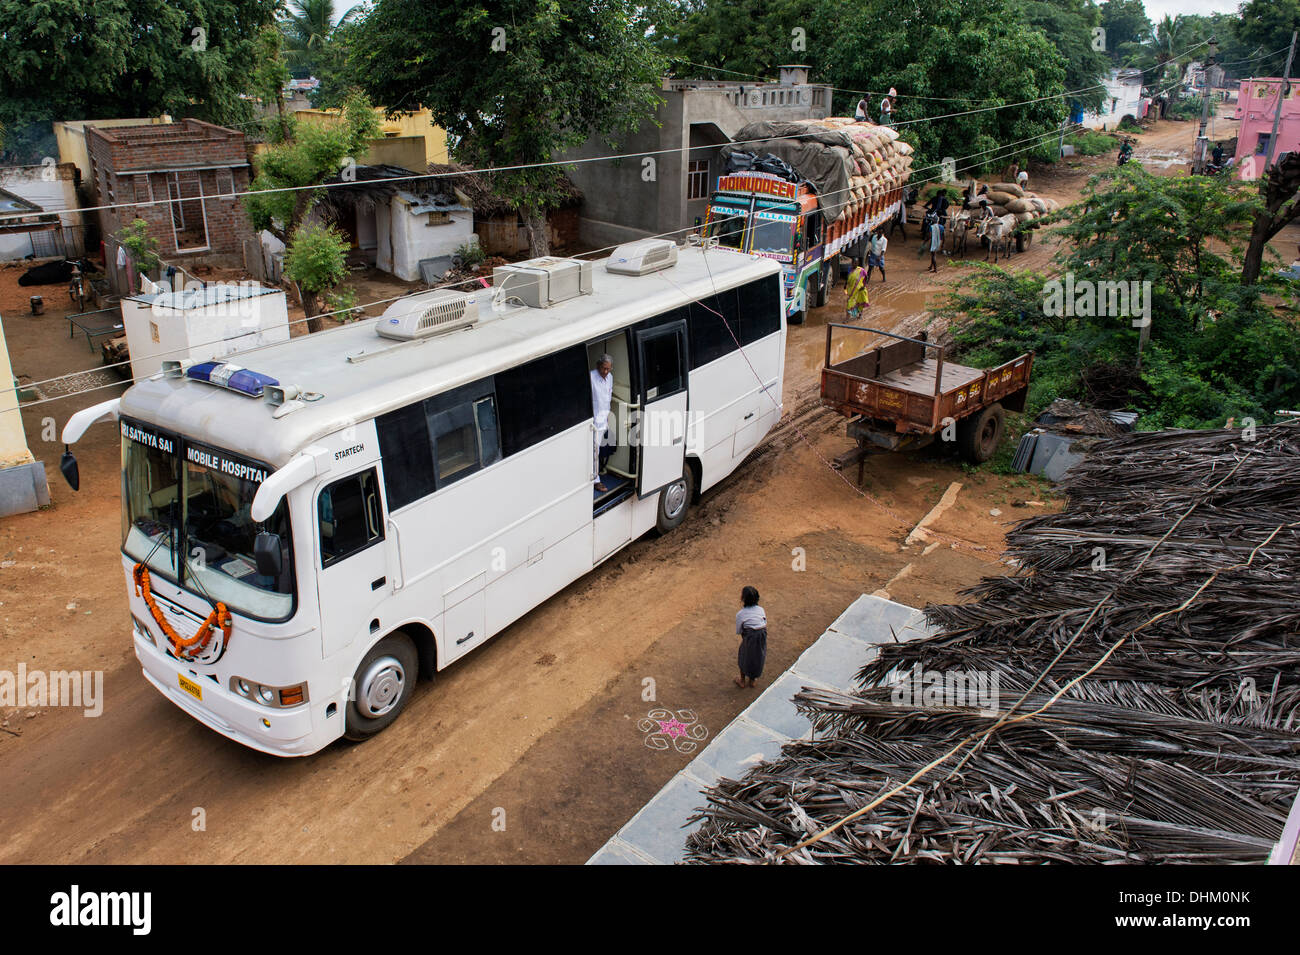 Sri Sathya Sai Baba mobile outreach hospital service clinic bus arriving at a rural Indian village. Andhra Pradesh, India - Stock Image